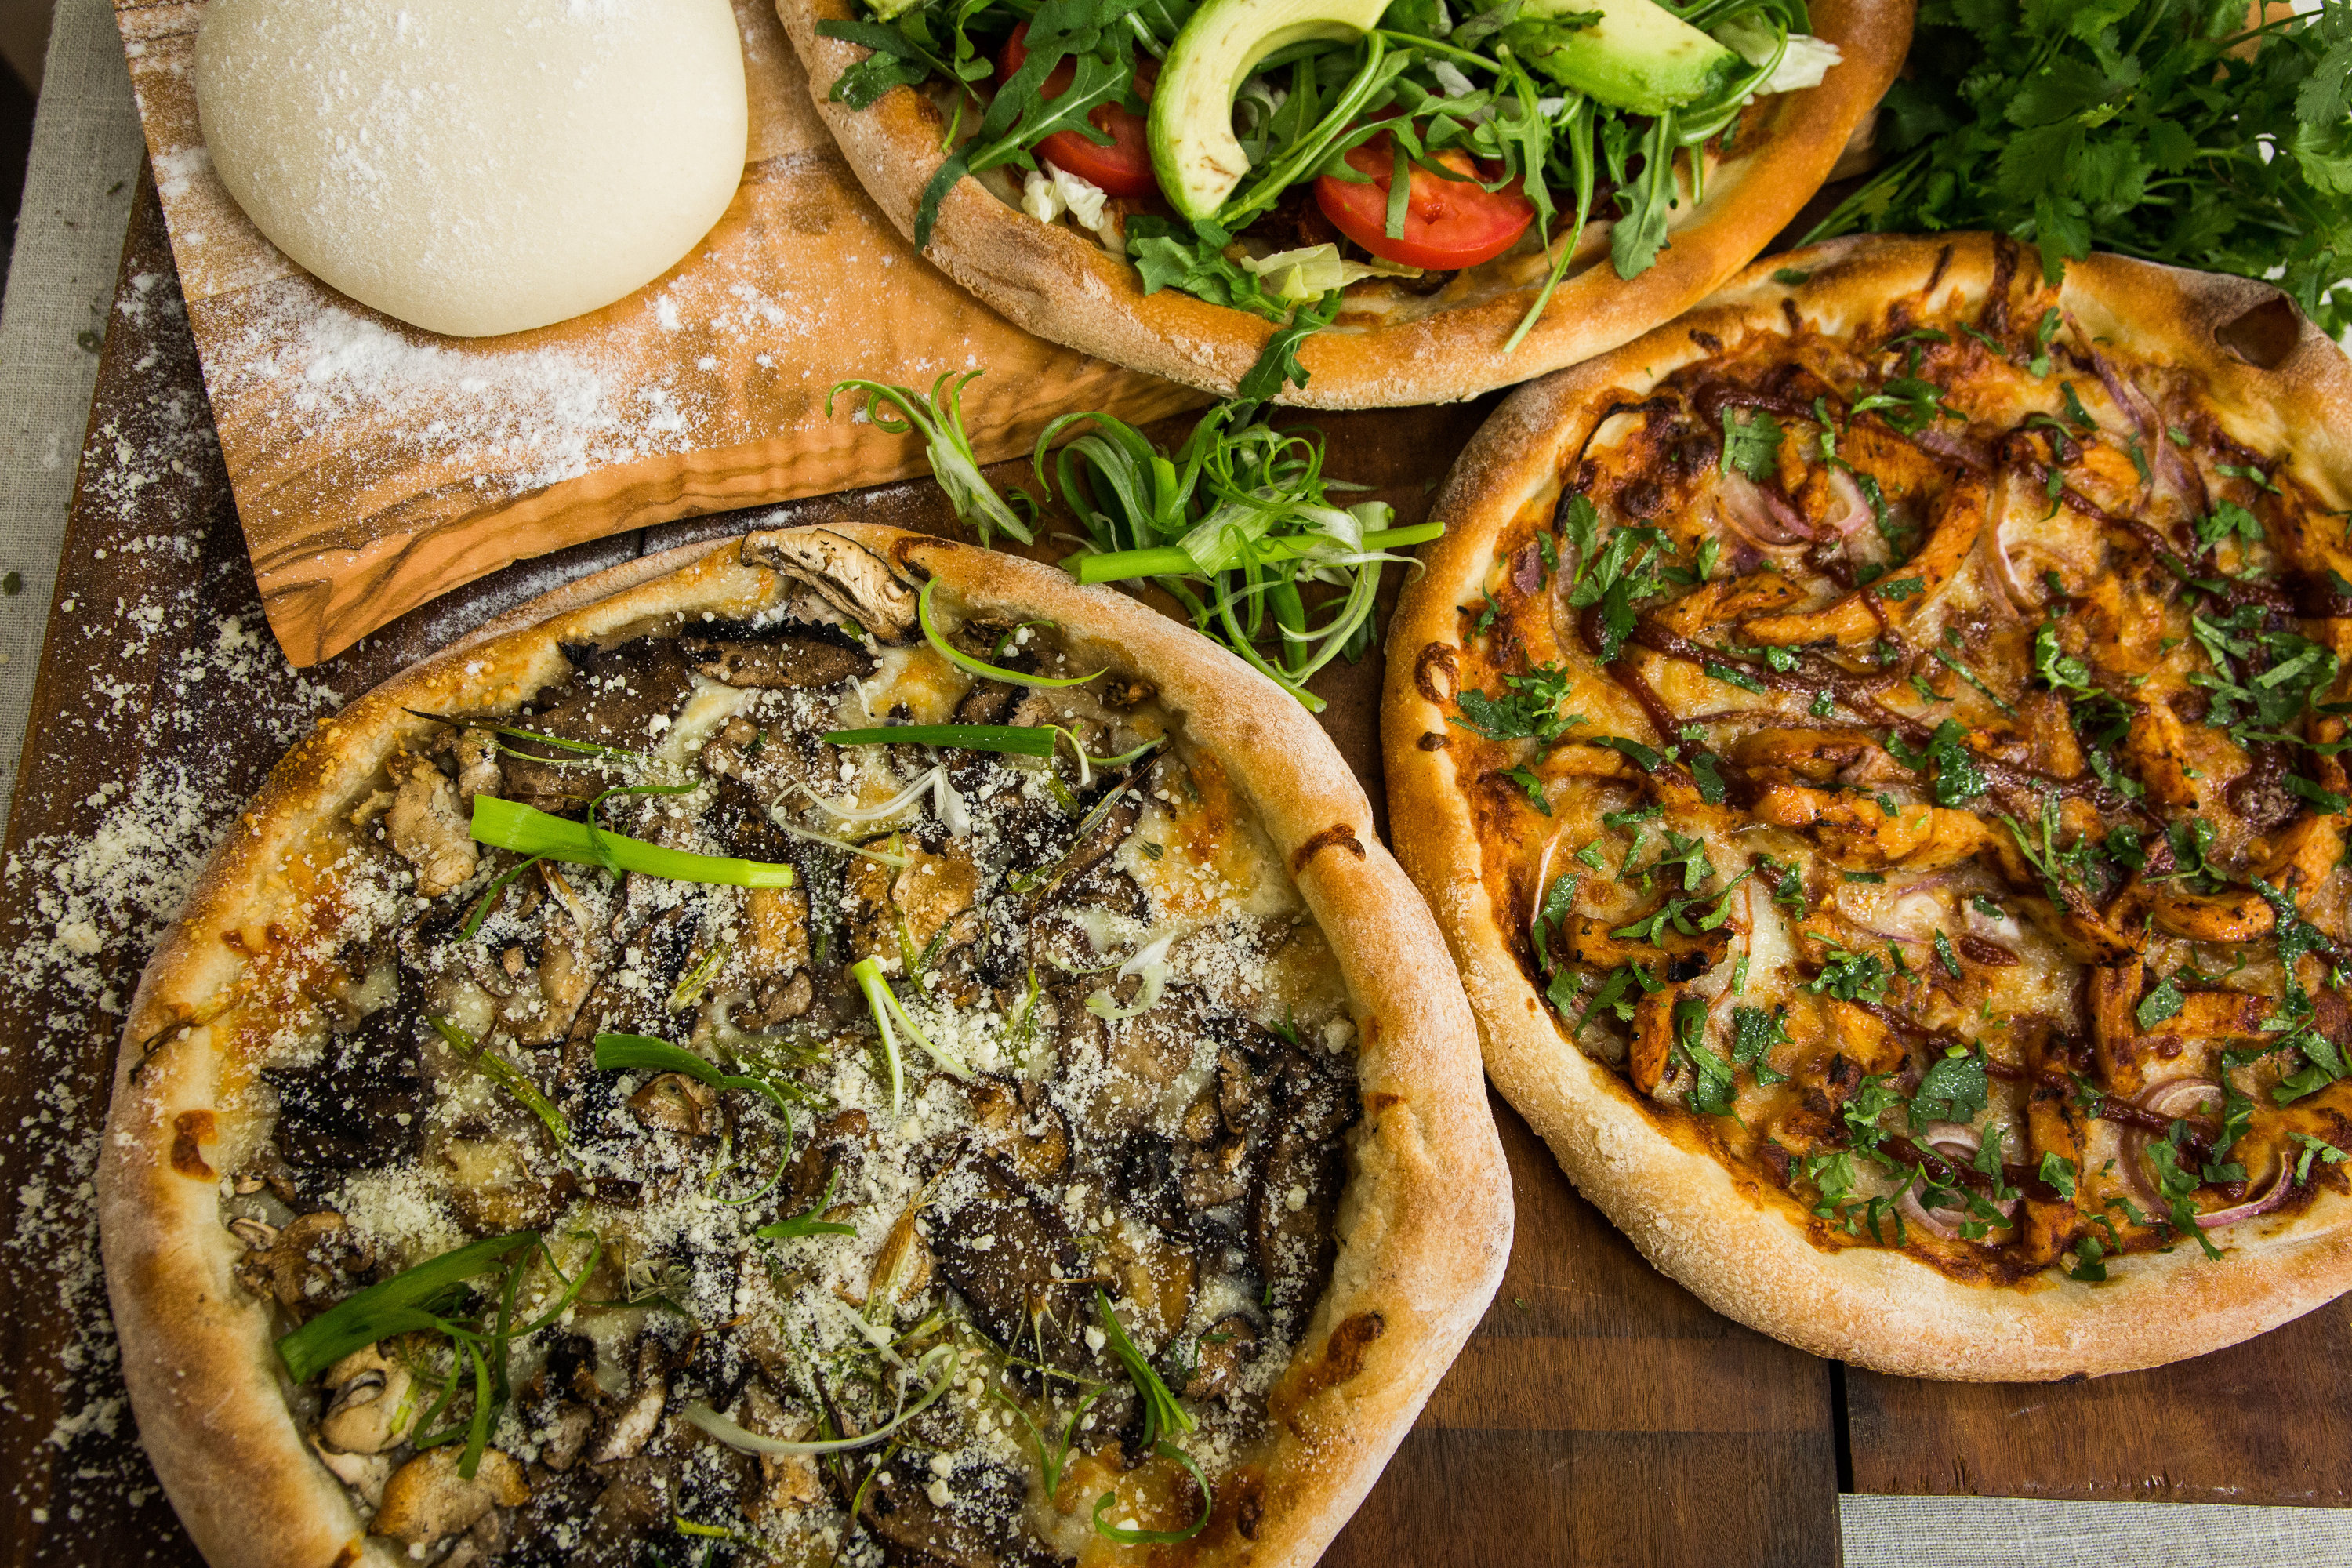 Recipes - Home & Family: Han-Tossed Pizza Dough   Hallmark Channel